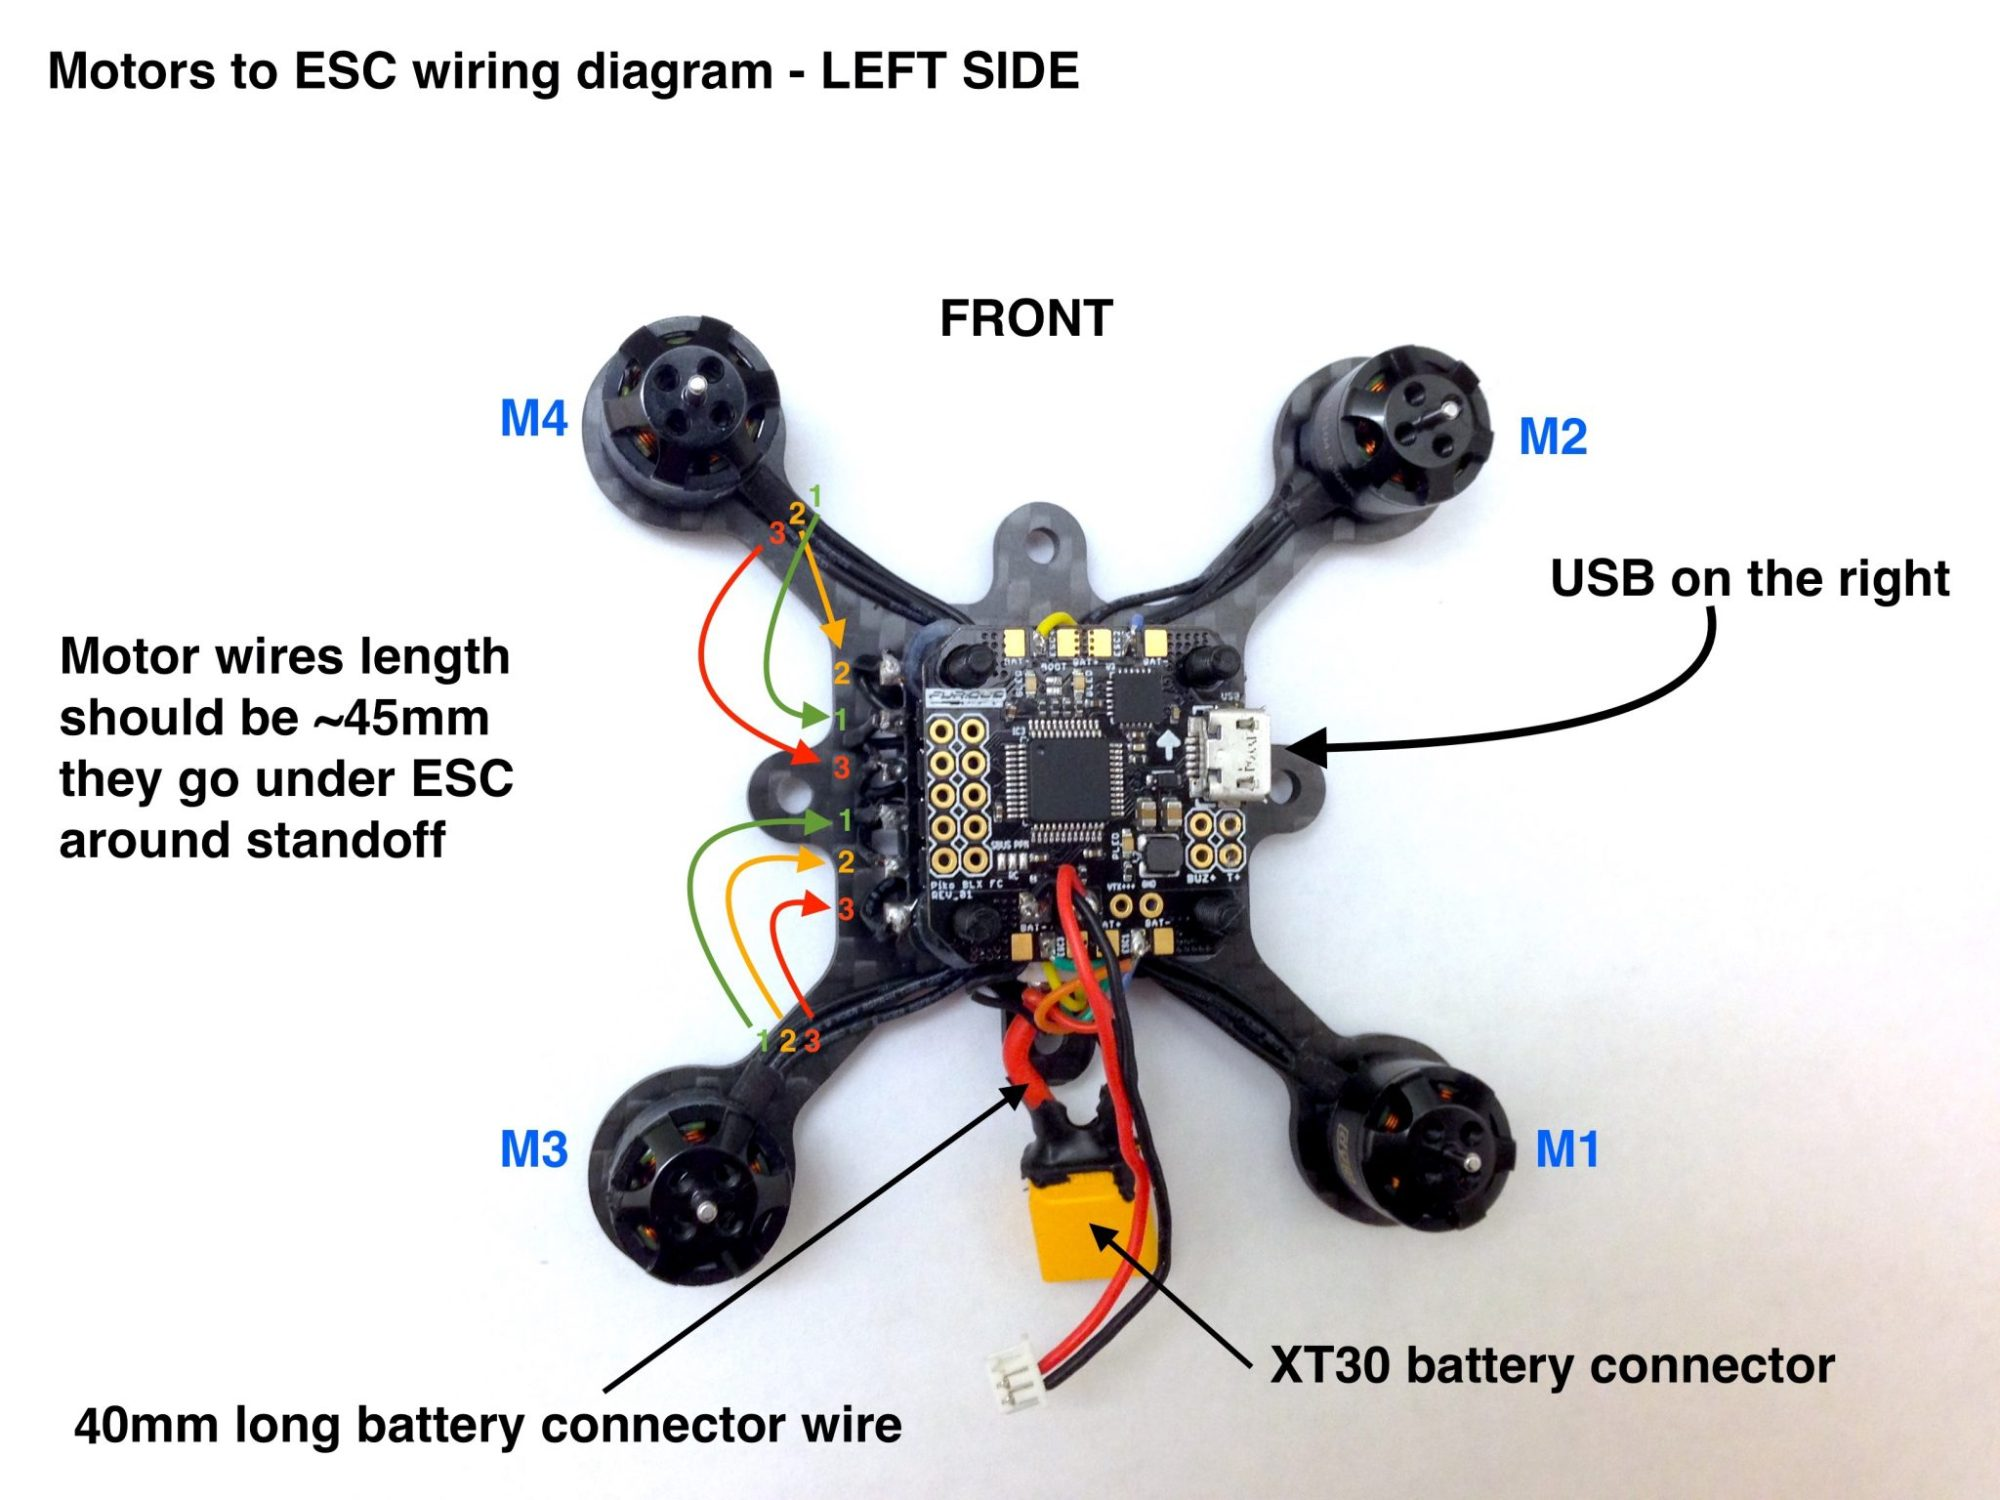 hight resolution of motors to esc connection diagram left